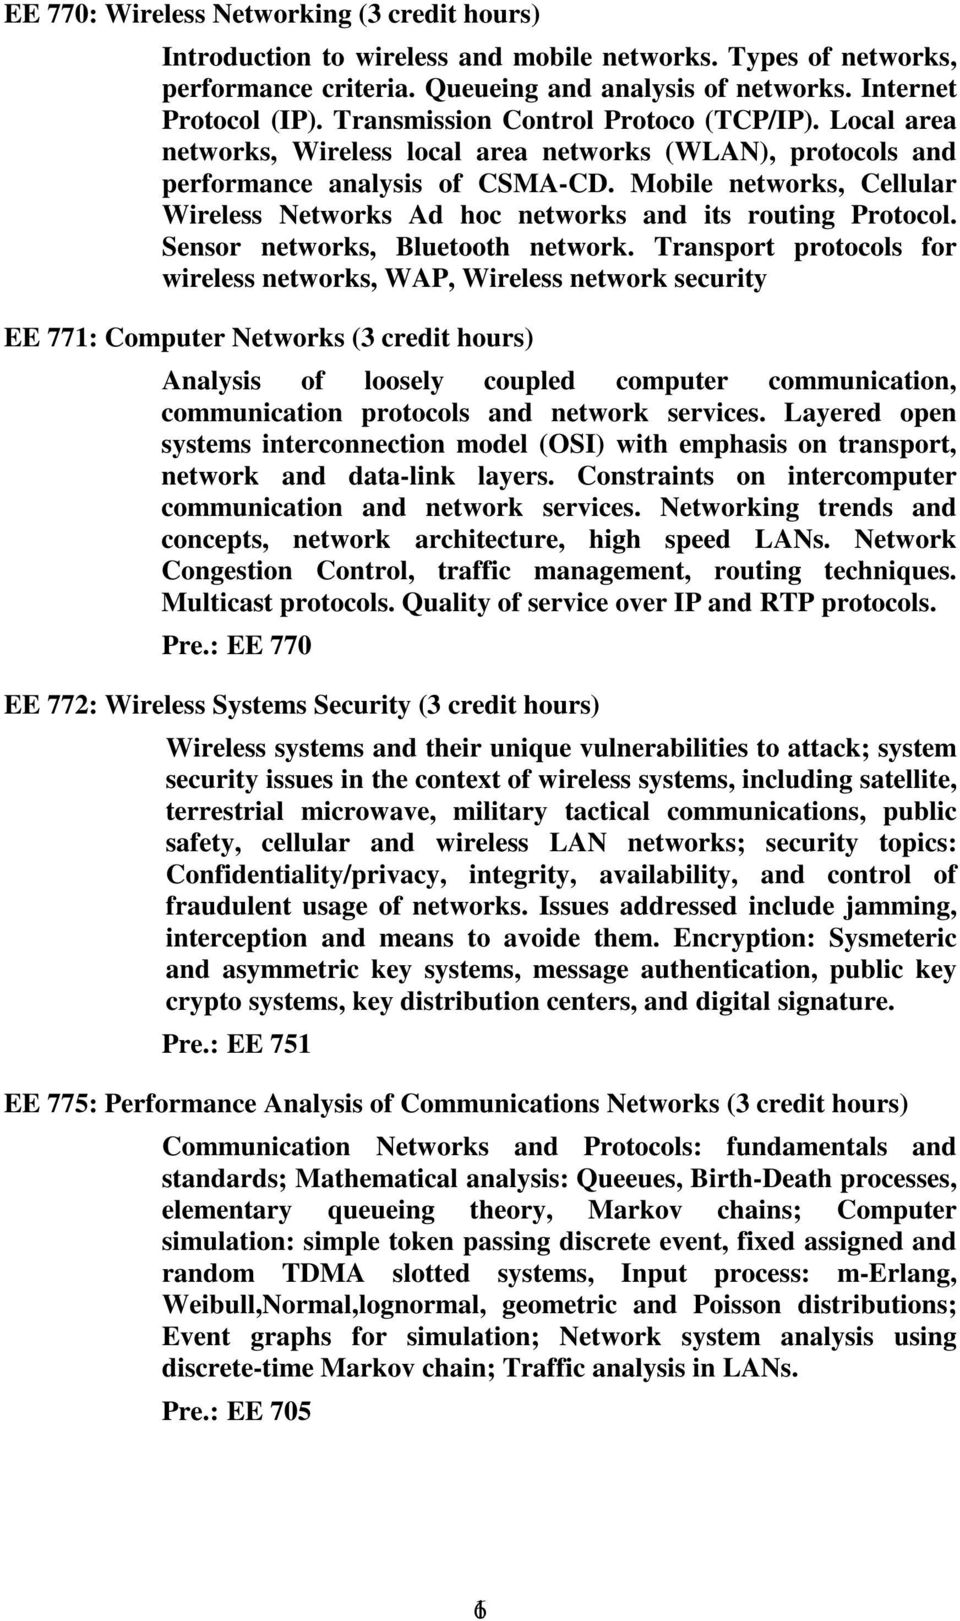 Mobile networks, Cellular Wireless Networks Ad hoc networks and its routing Protocol. Sensor networks, Bluetooth network.